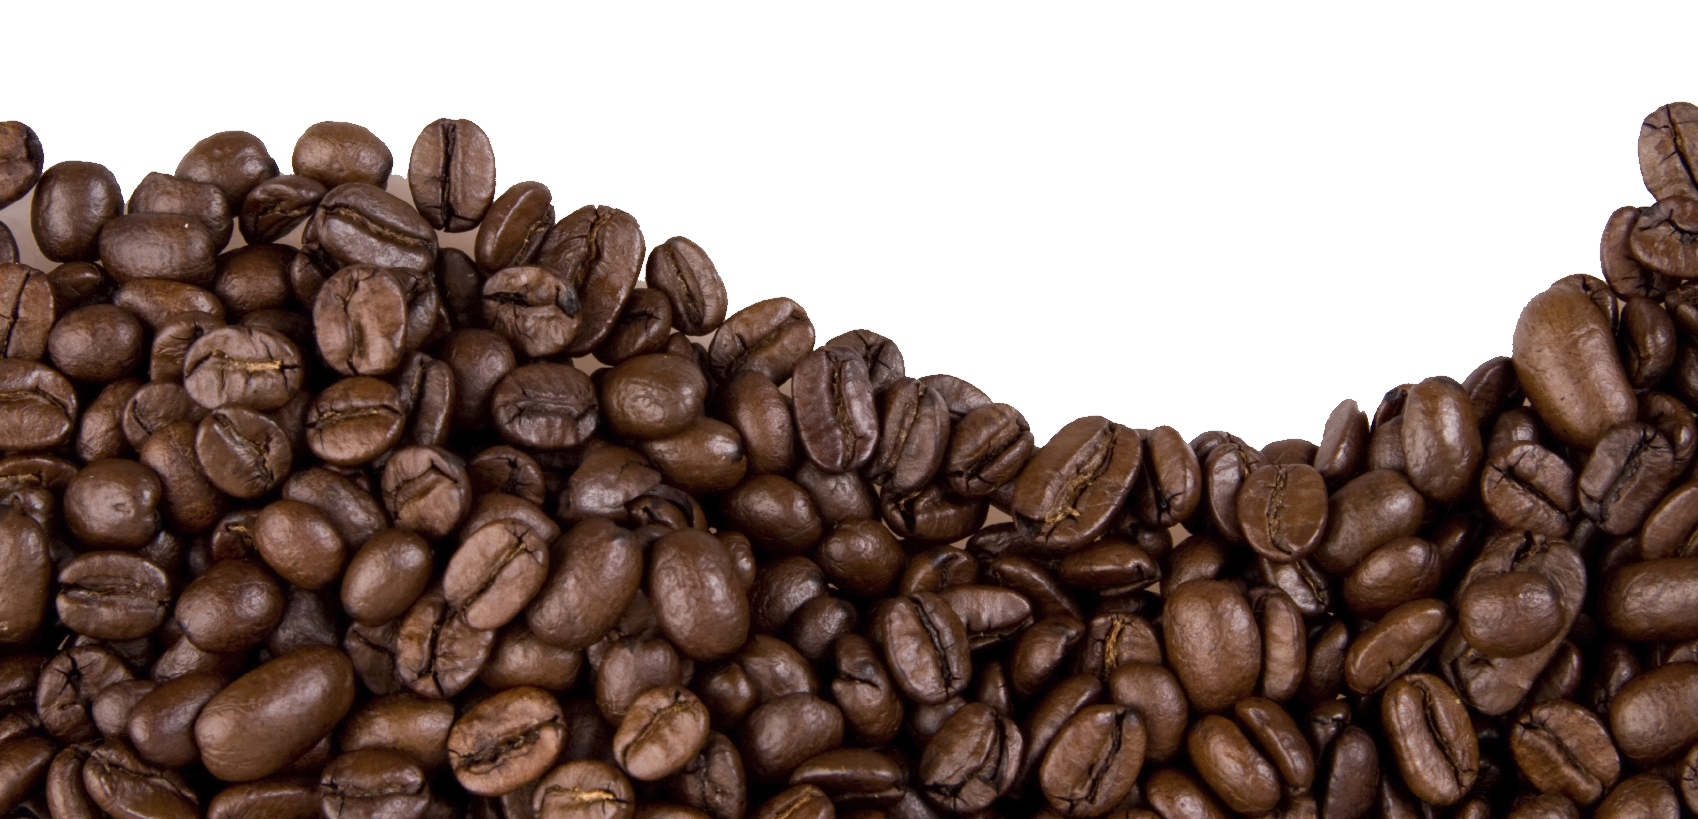 Best Tasting Coffee Beans